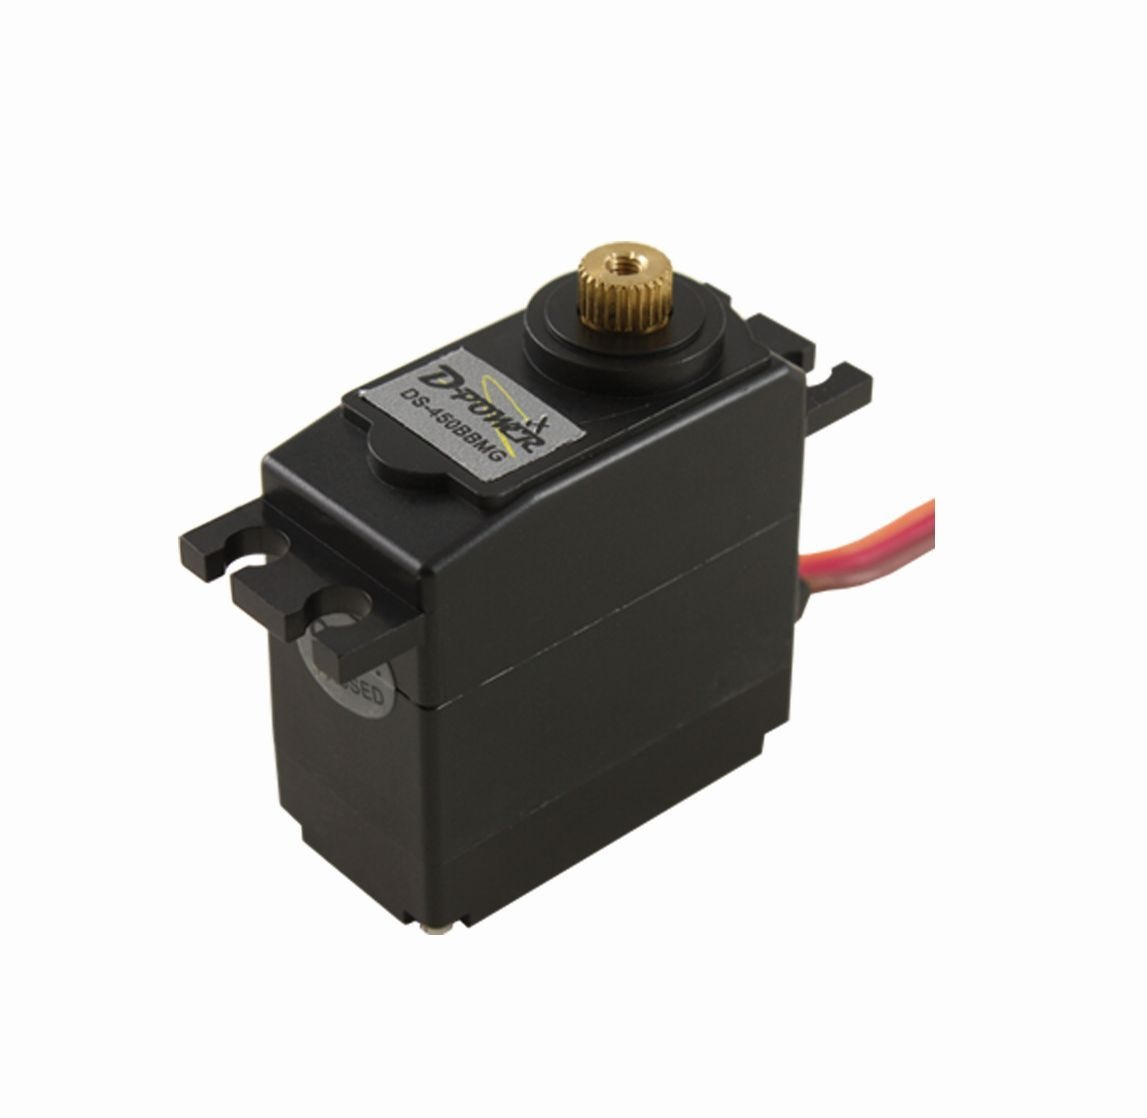 D-Power DS-450BB MG Digital-Servo